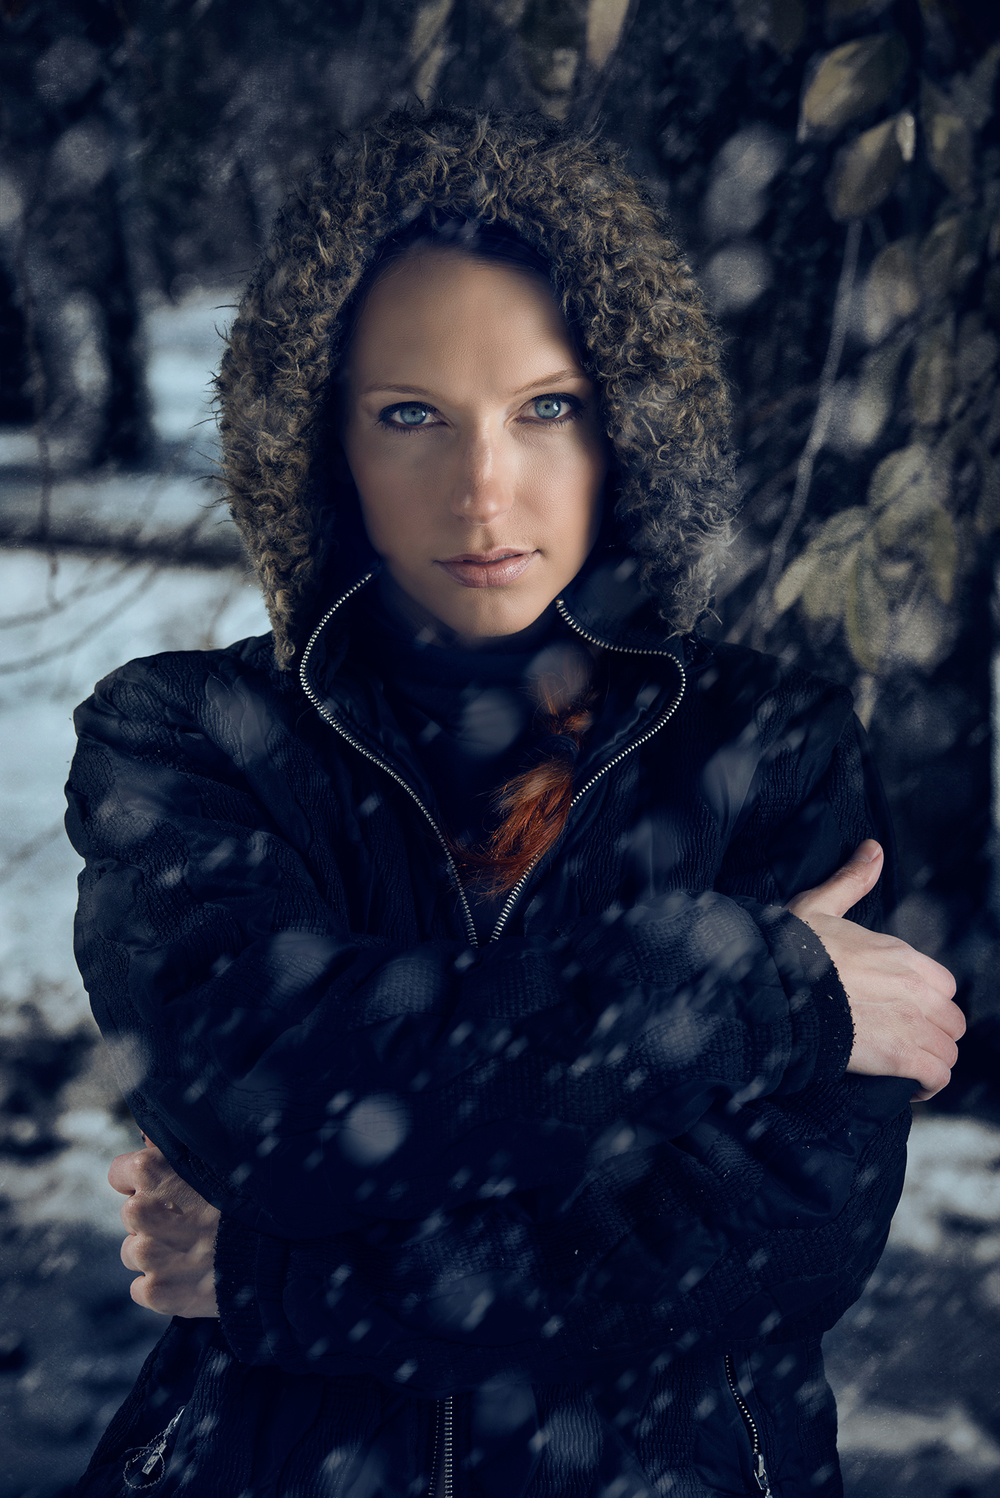 A female model poses in a winter jacket in Denver, CO